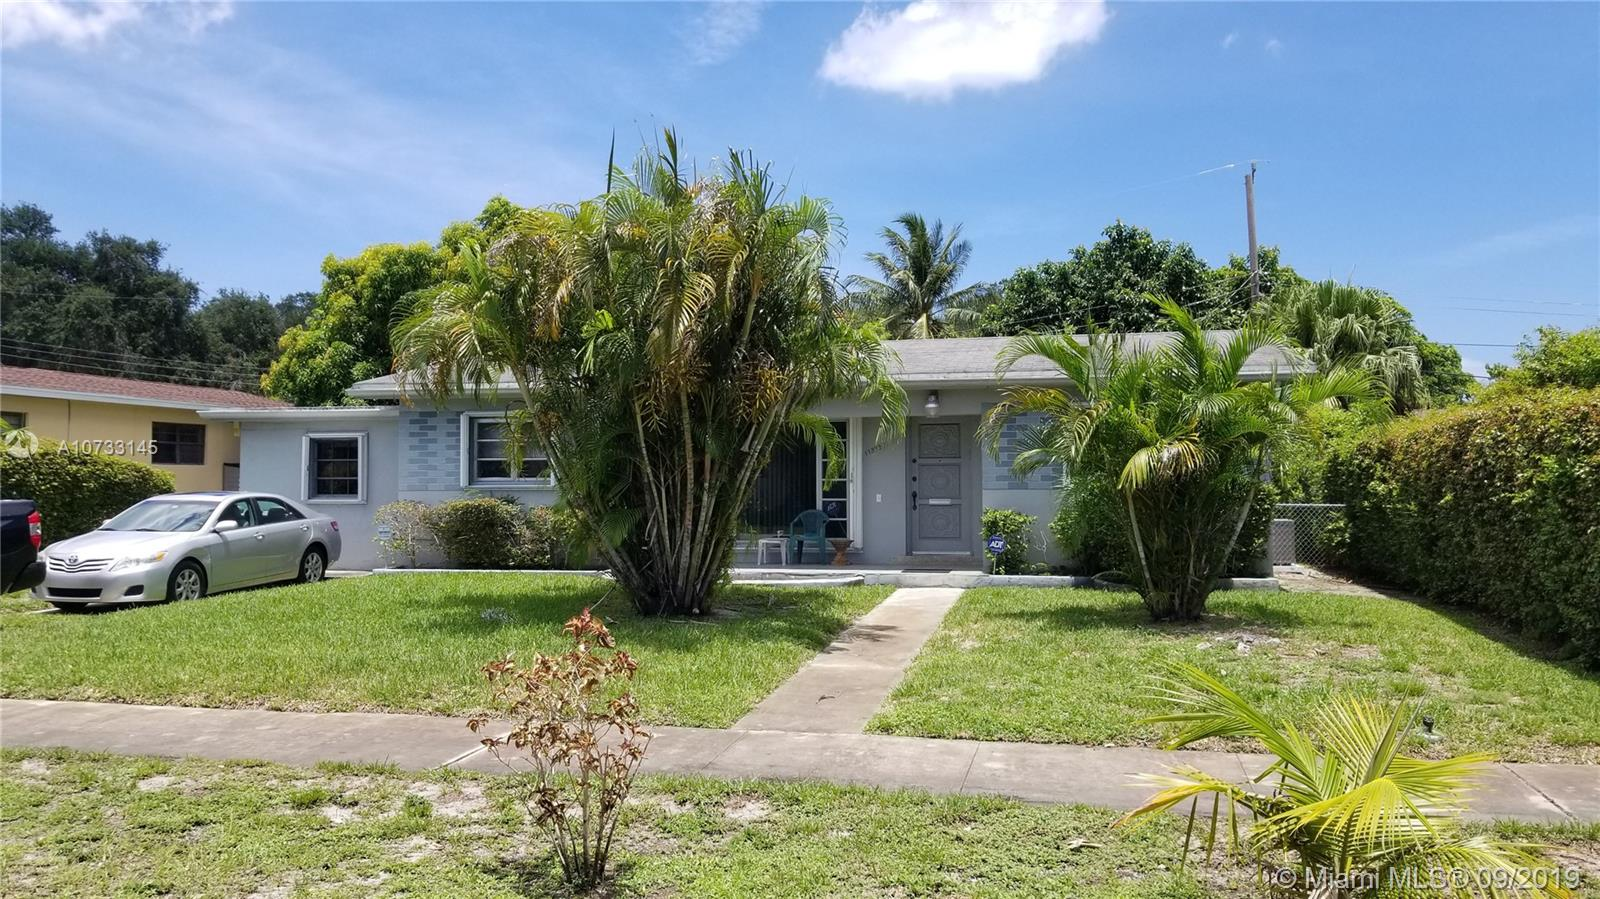 17335 N E 12th Ave  For Sale A10733145, FL